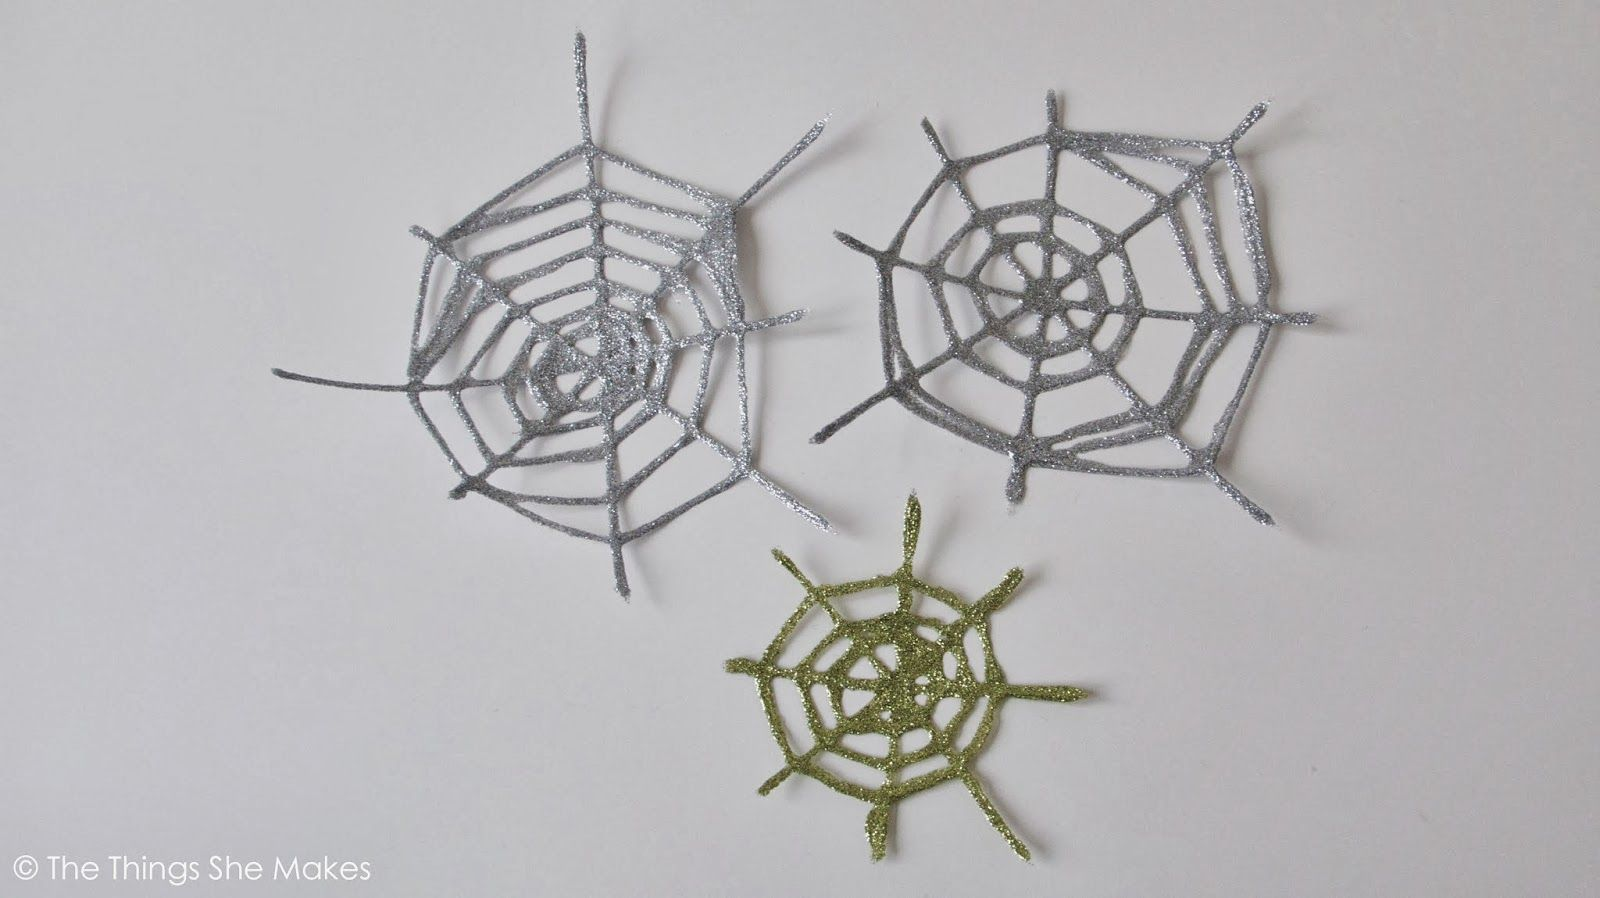 Glitter Spiderwebs - easy - can't wait to try some